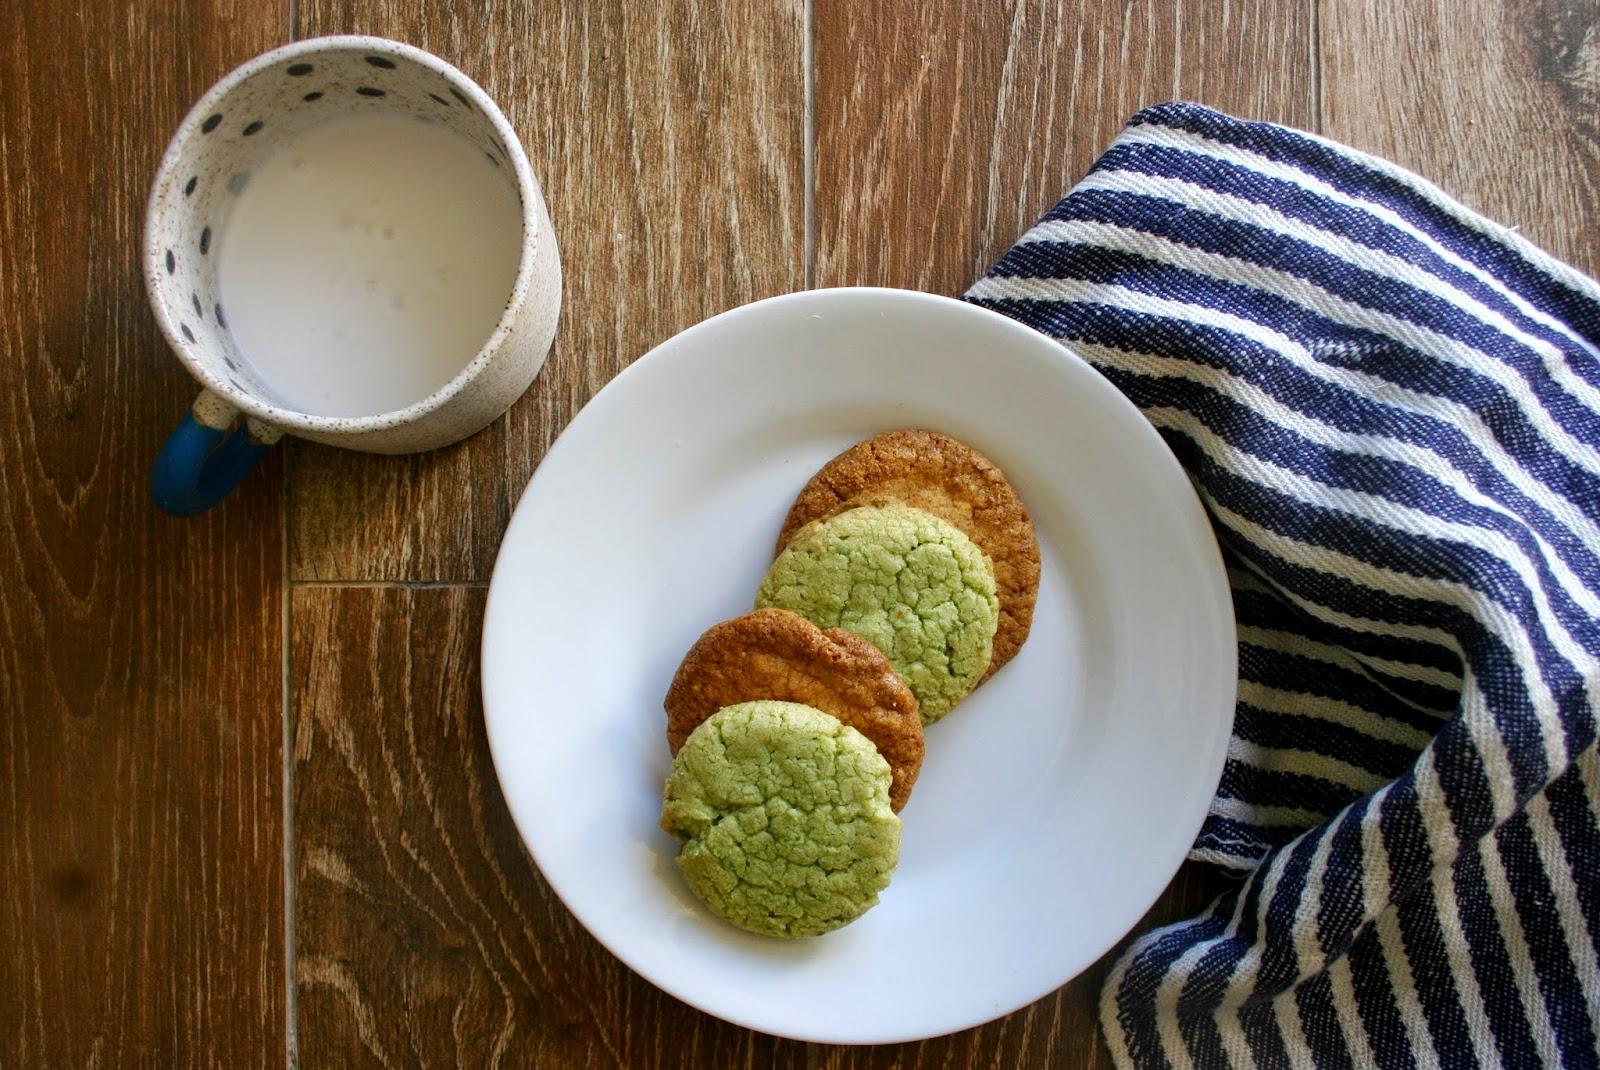 Pea & Corn Cookies with milk